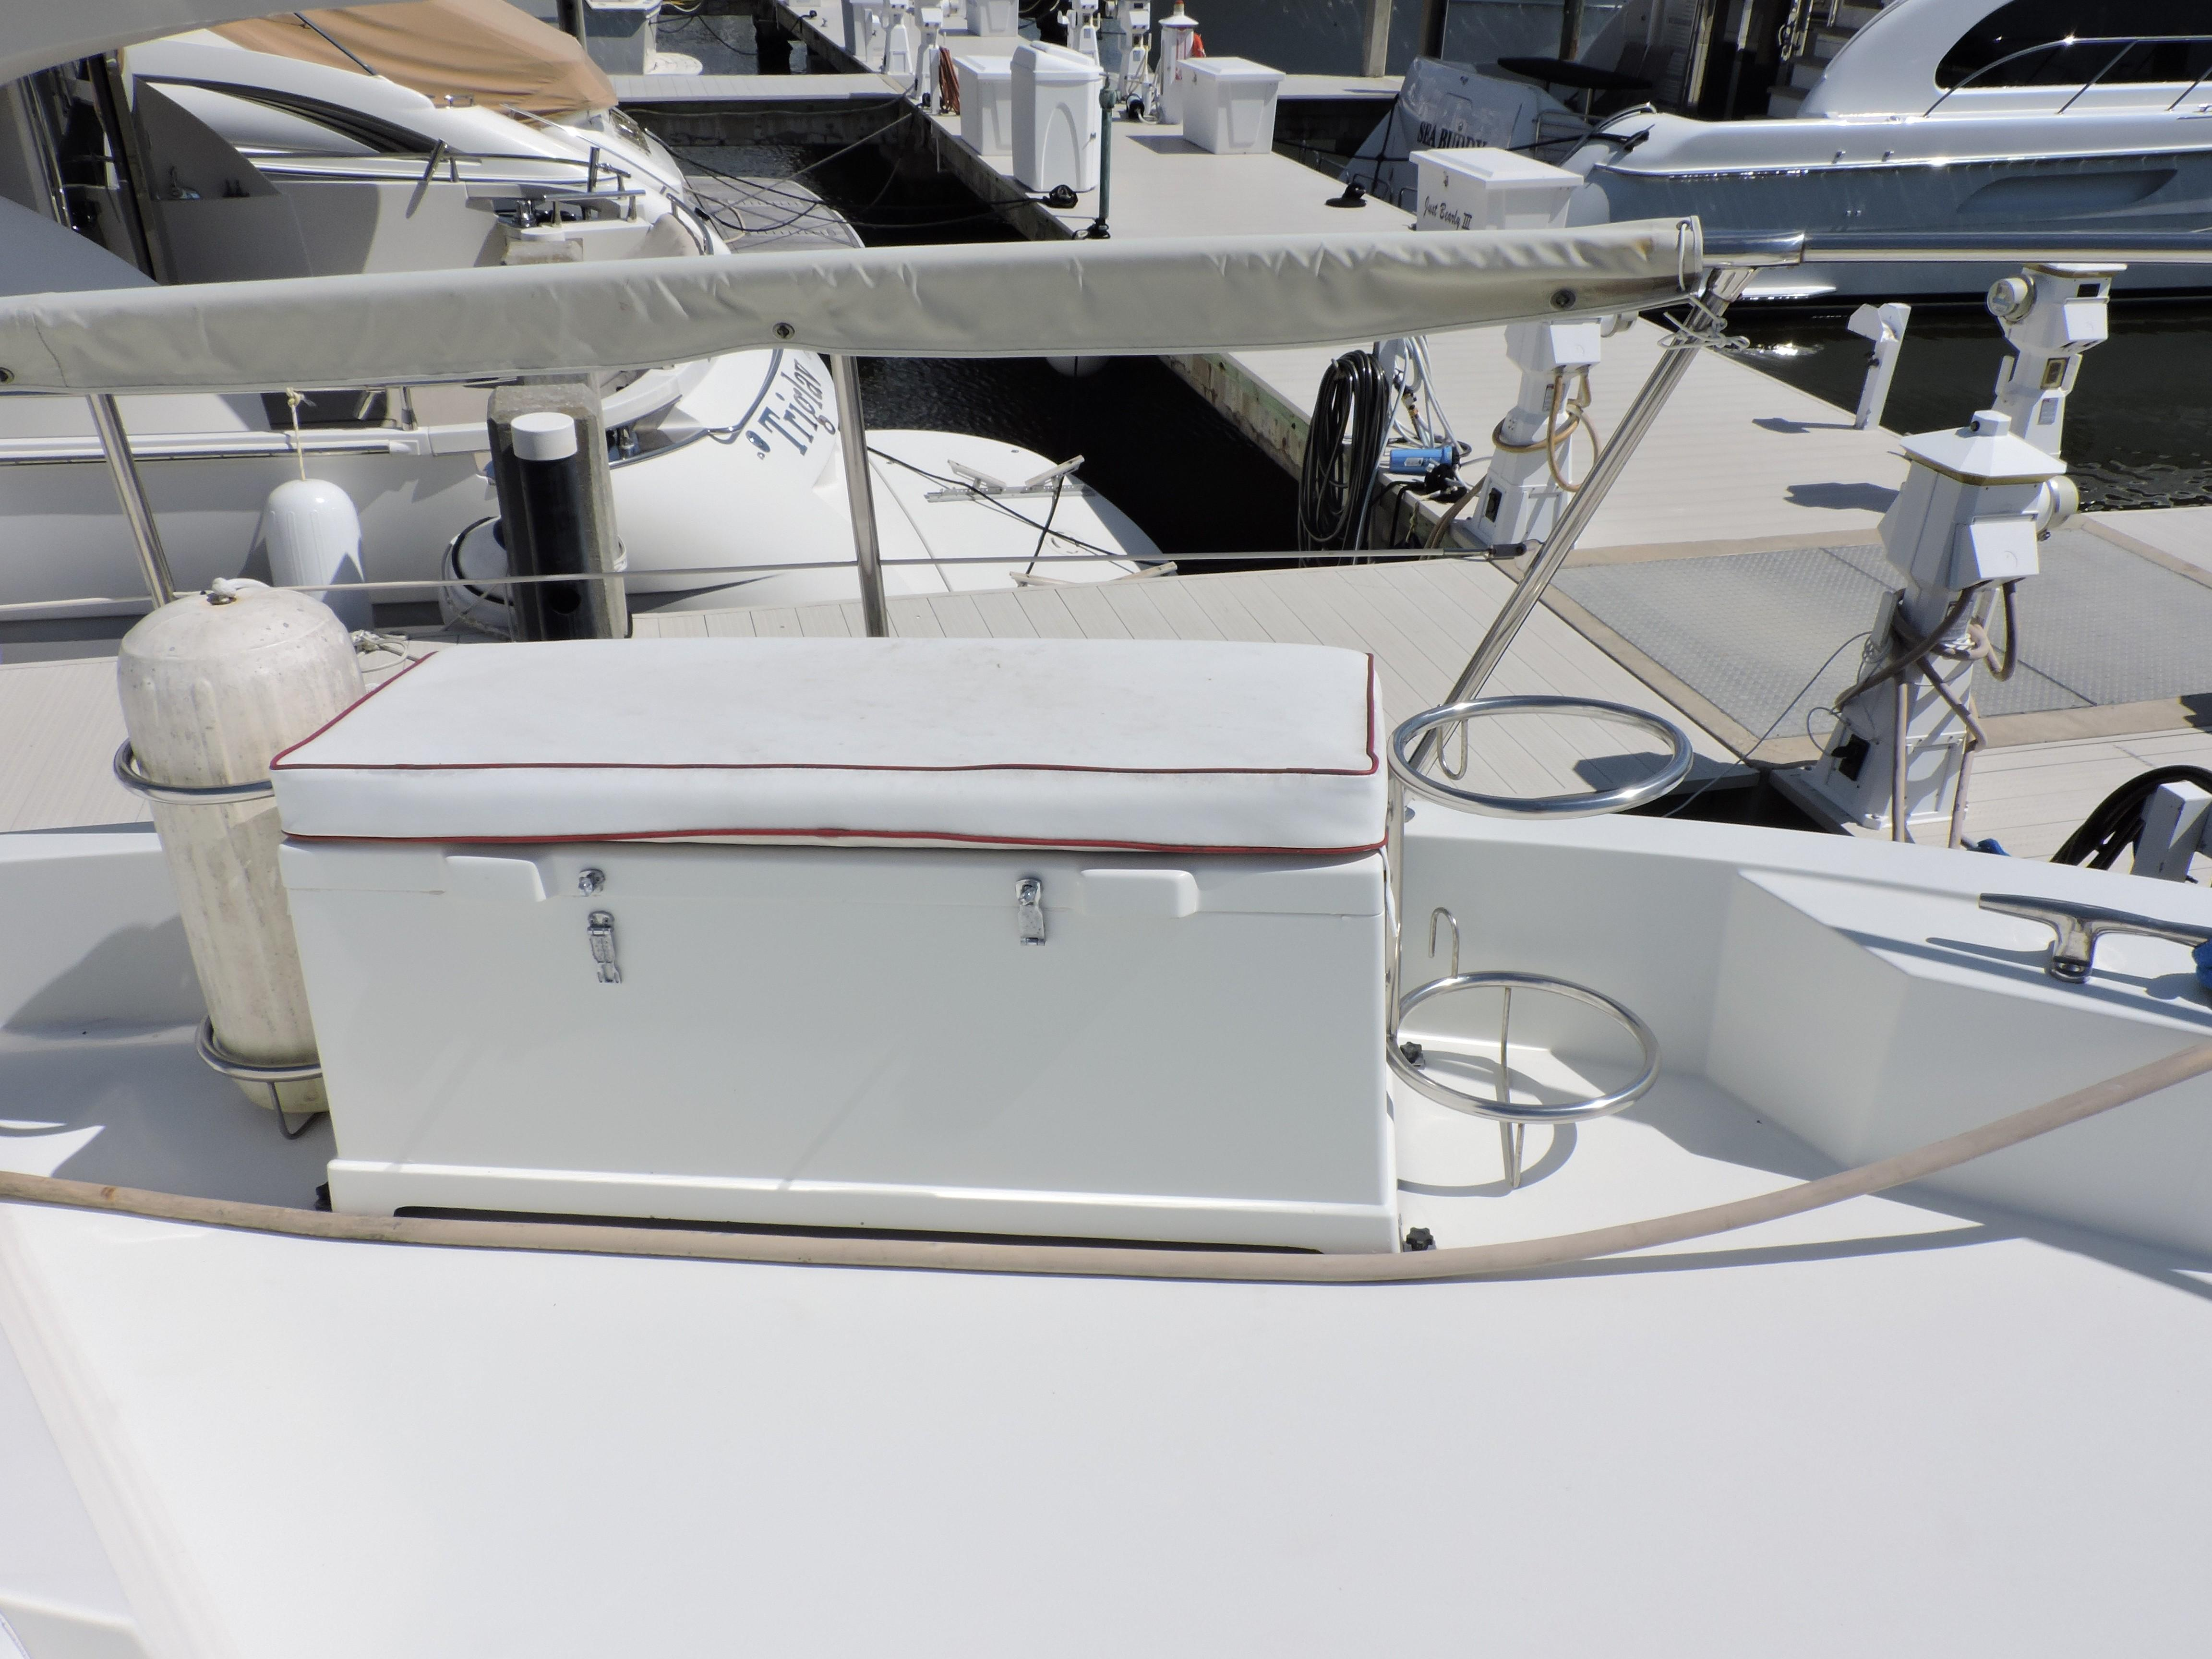 1989 60 Ft Yacht For Sale Allied Marine Cruisair Ac Wiring Diagram Bow Storage